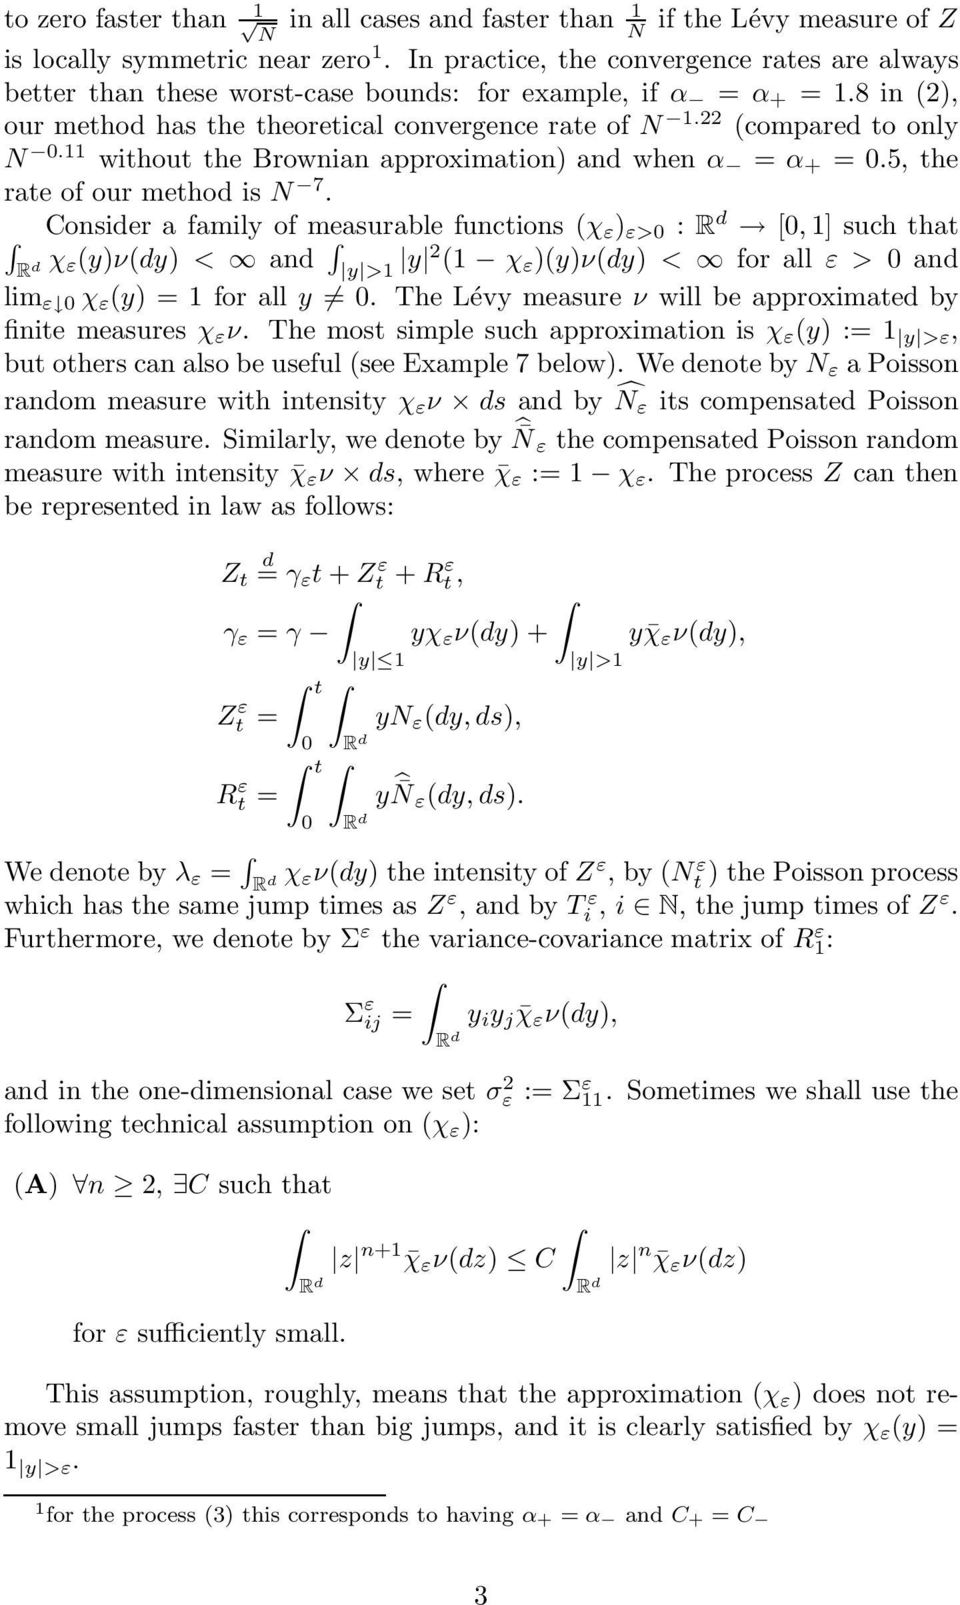 without the Brownian approximation) and when α = α + =.5, the rate of our method is N 7.